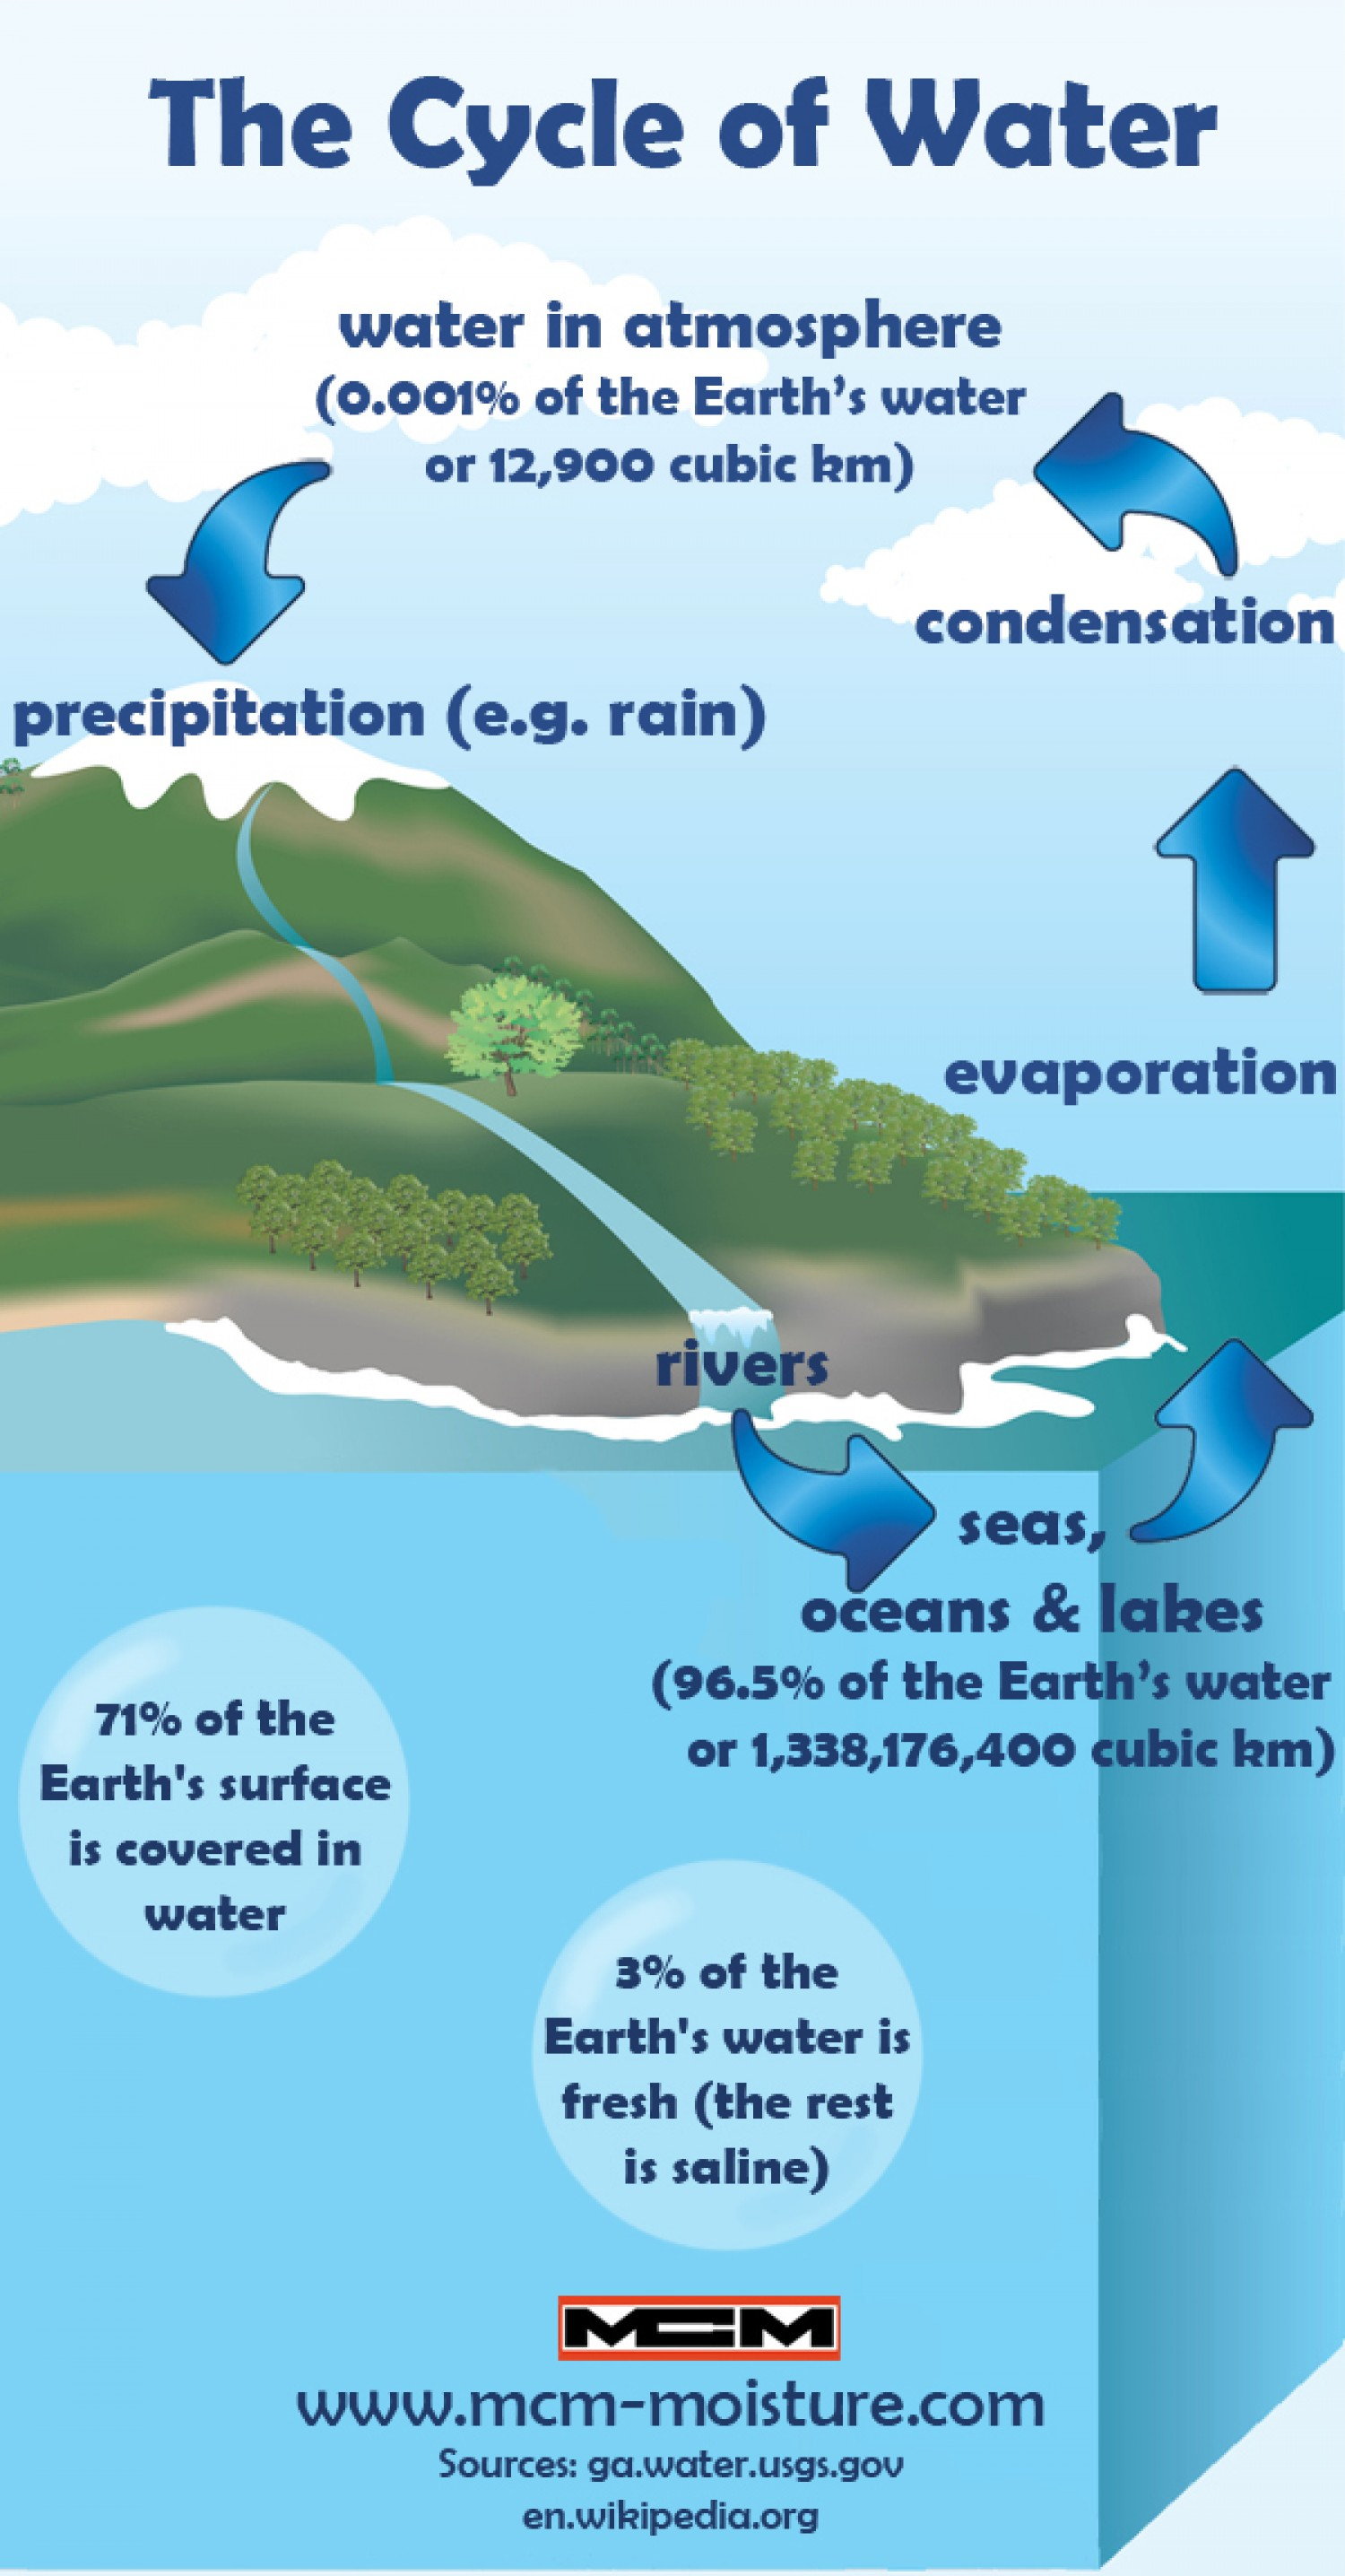 Life Cycle of Water Infographic